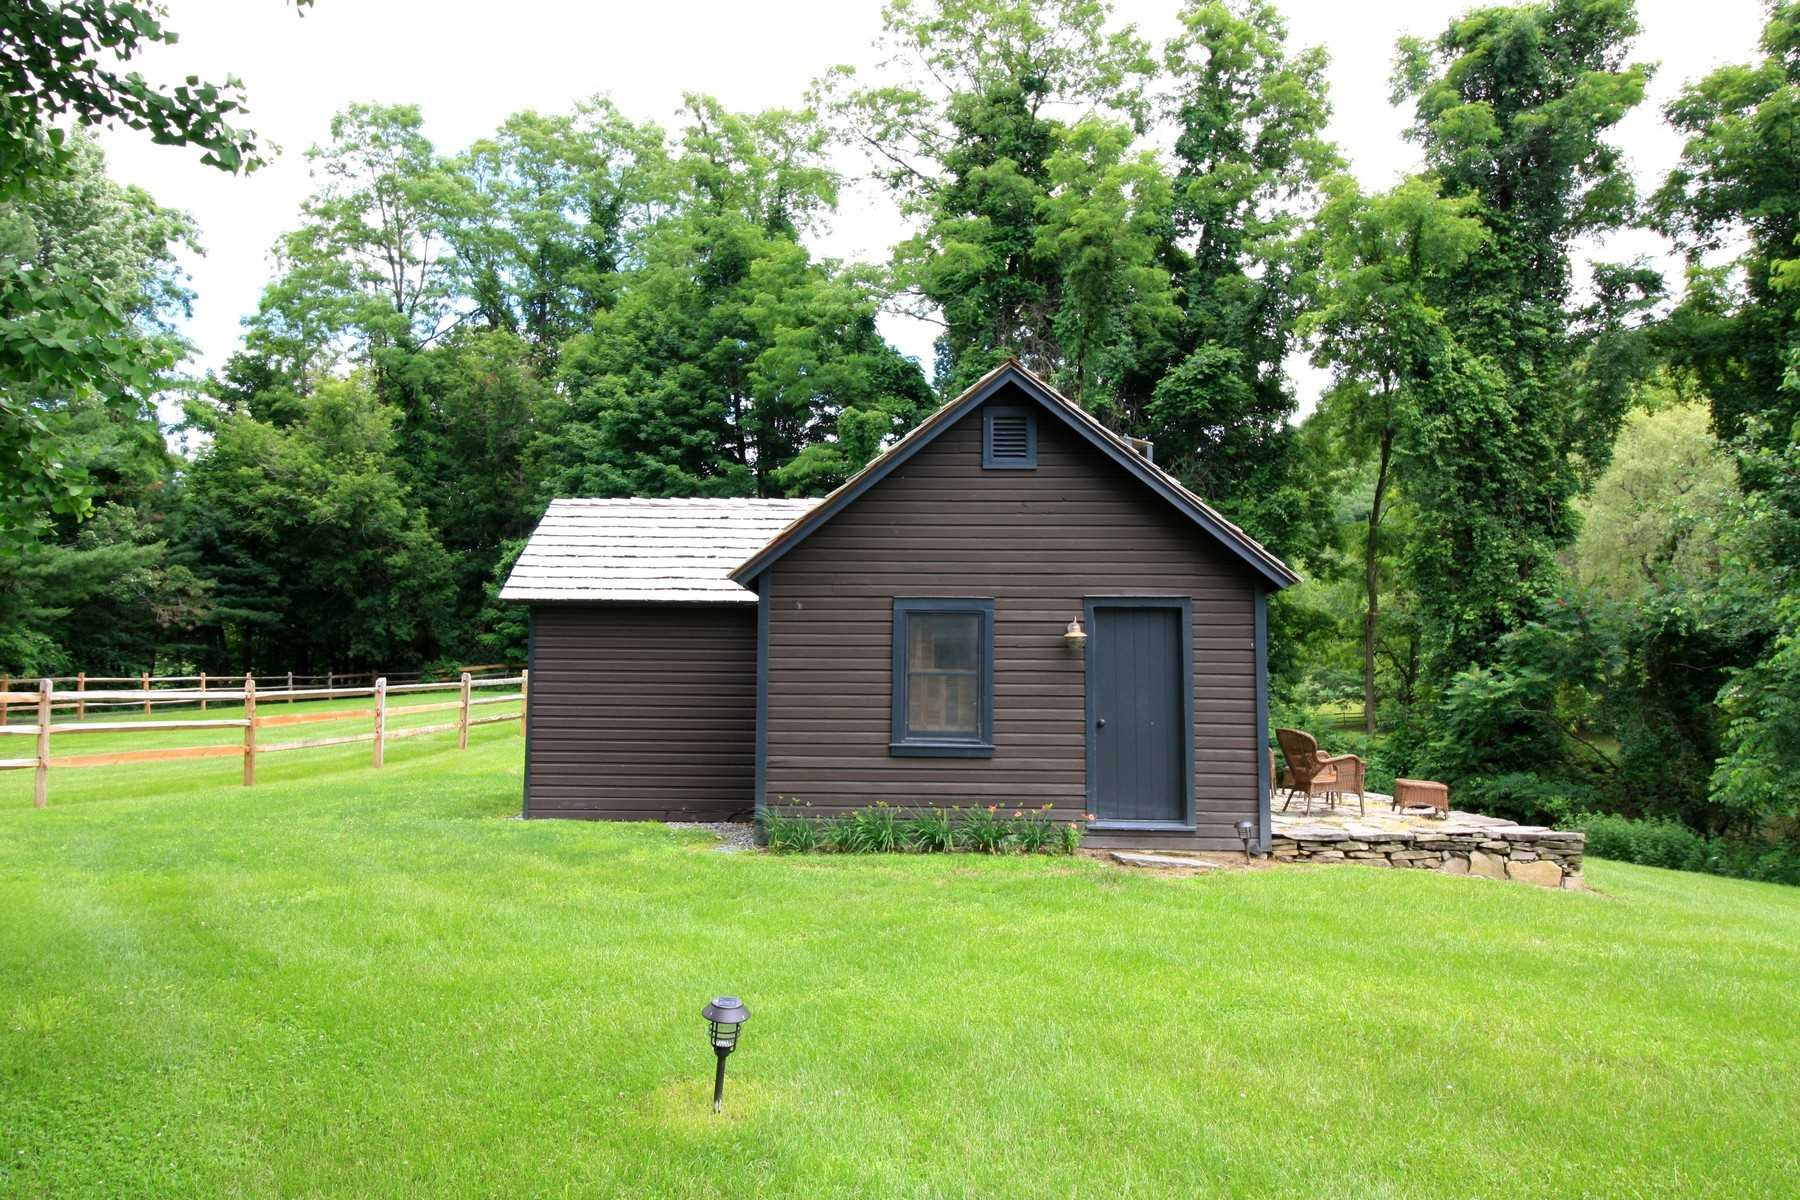 Additional photo for property listing at 400 NEW SALEM Road 400 NEW SALEM Road Esopus, New York 12401 United States